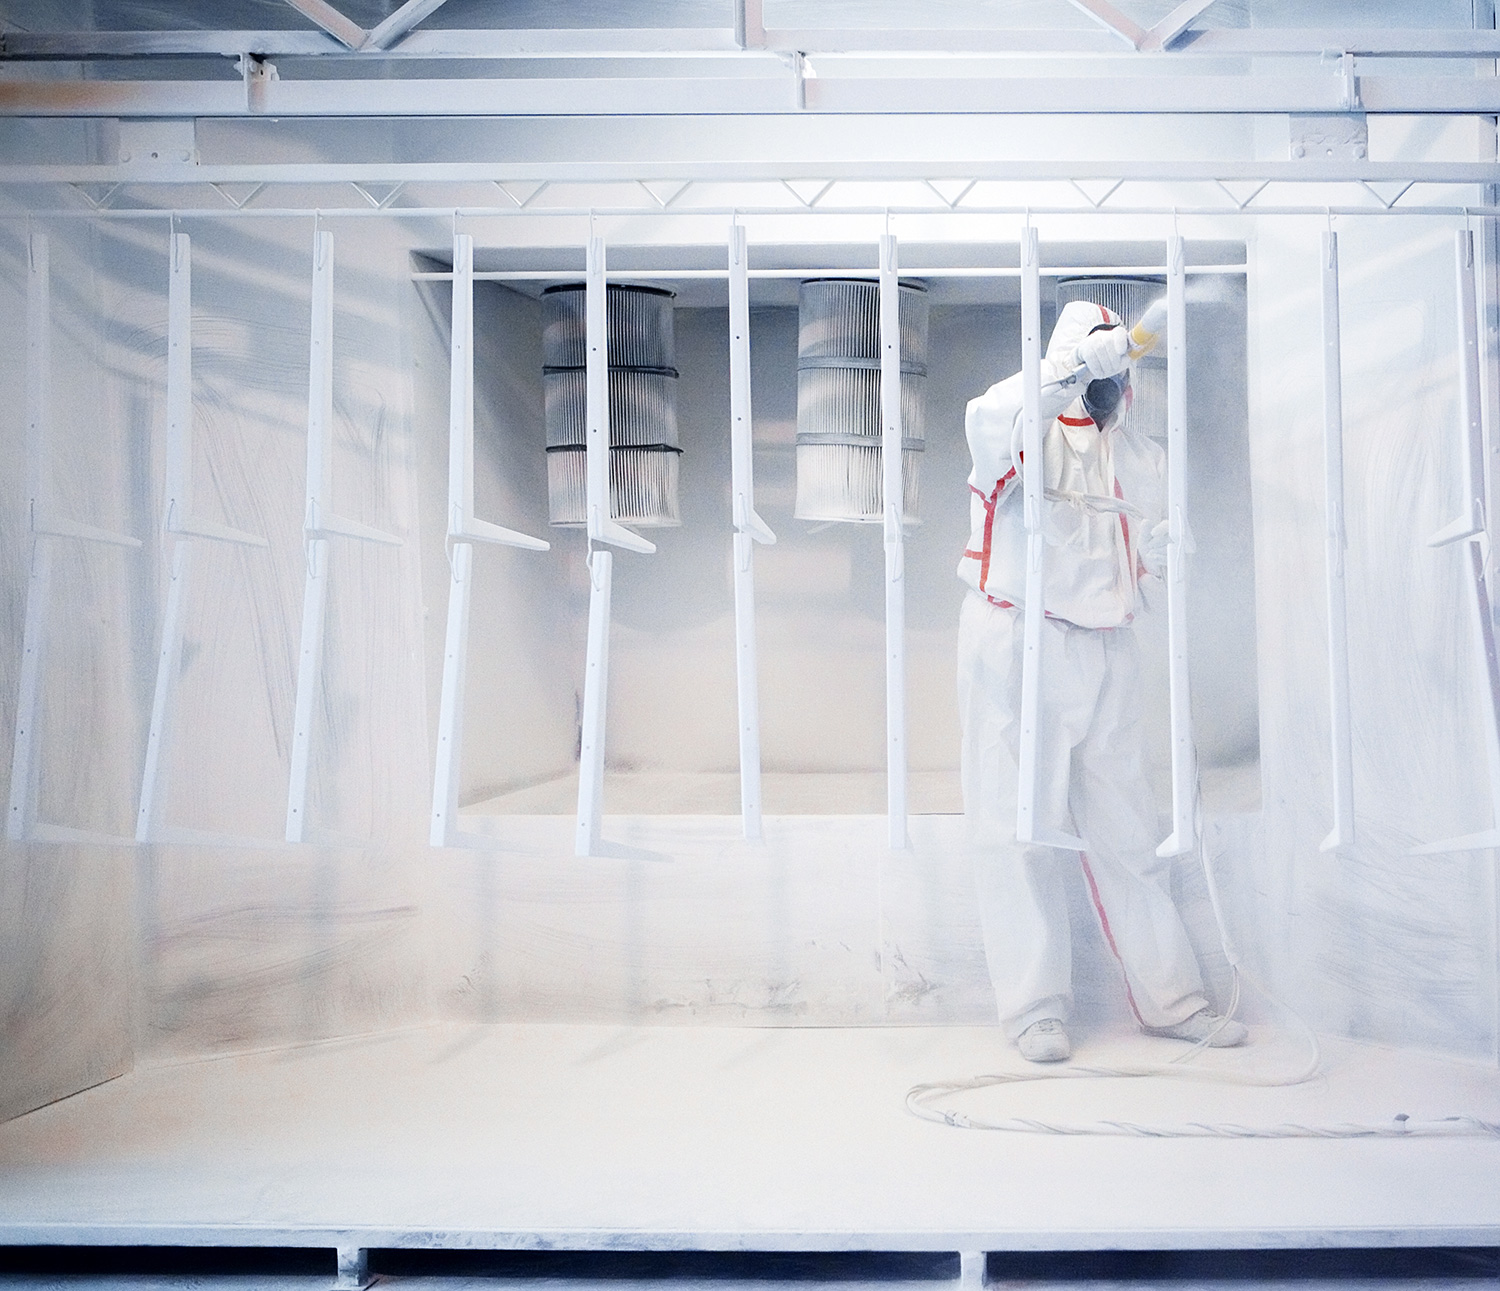 Corporate Services, Inc. is hiring Industrial Powder Coat Painters — up to $15.50/hour — apply today!